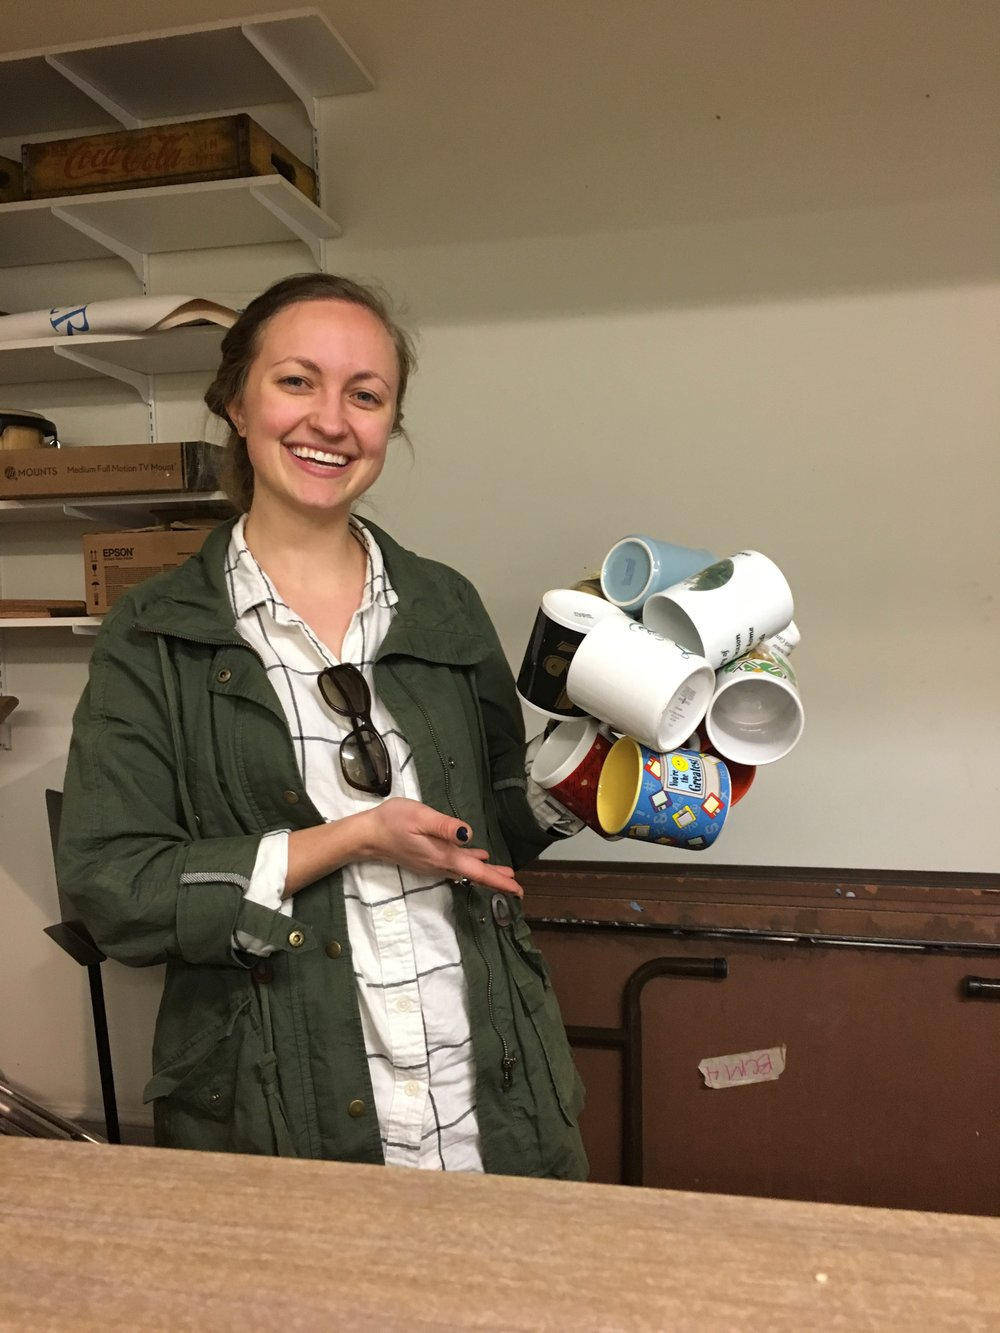 Katharine Batchelor, Director of Christian Life. There's an on-going contest for how many coffee mugs you can hold in one hand. Katharine set the bar high with 11.